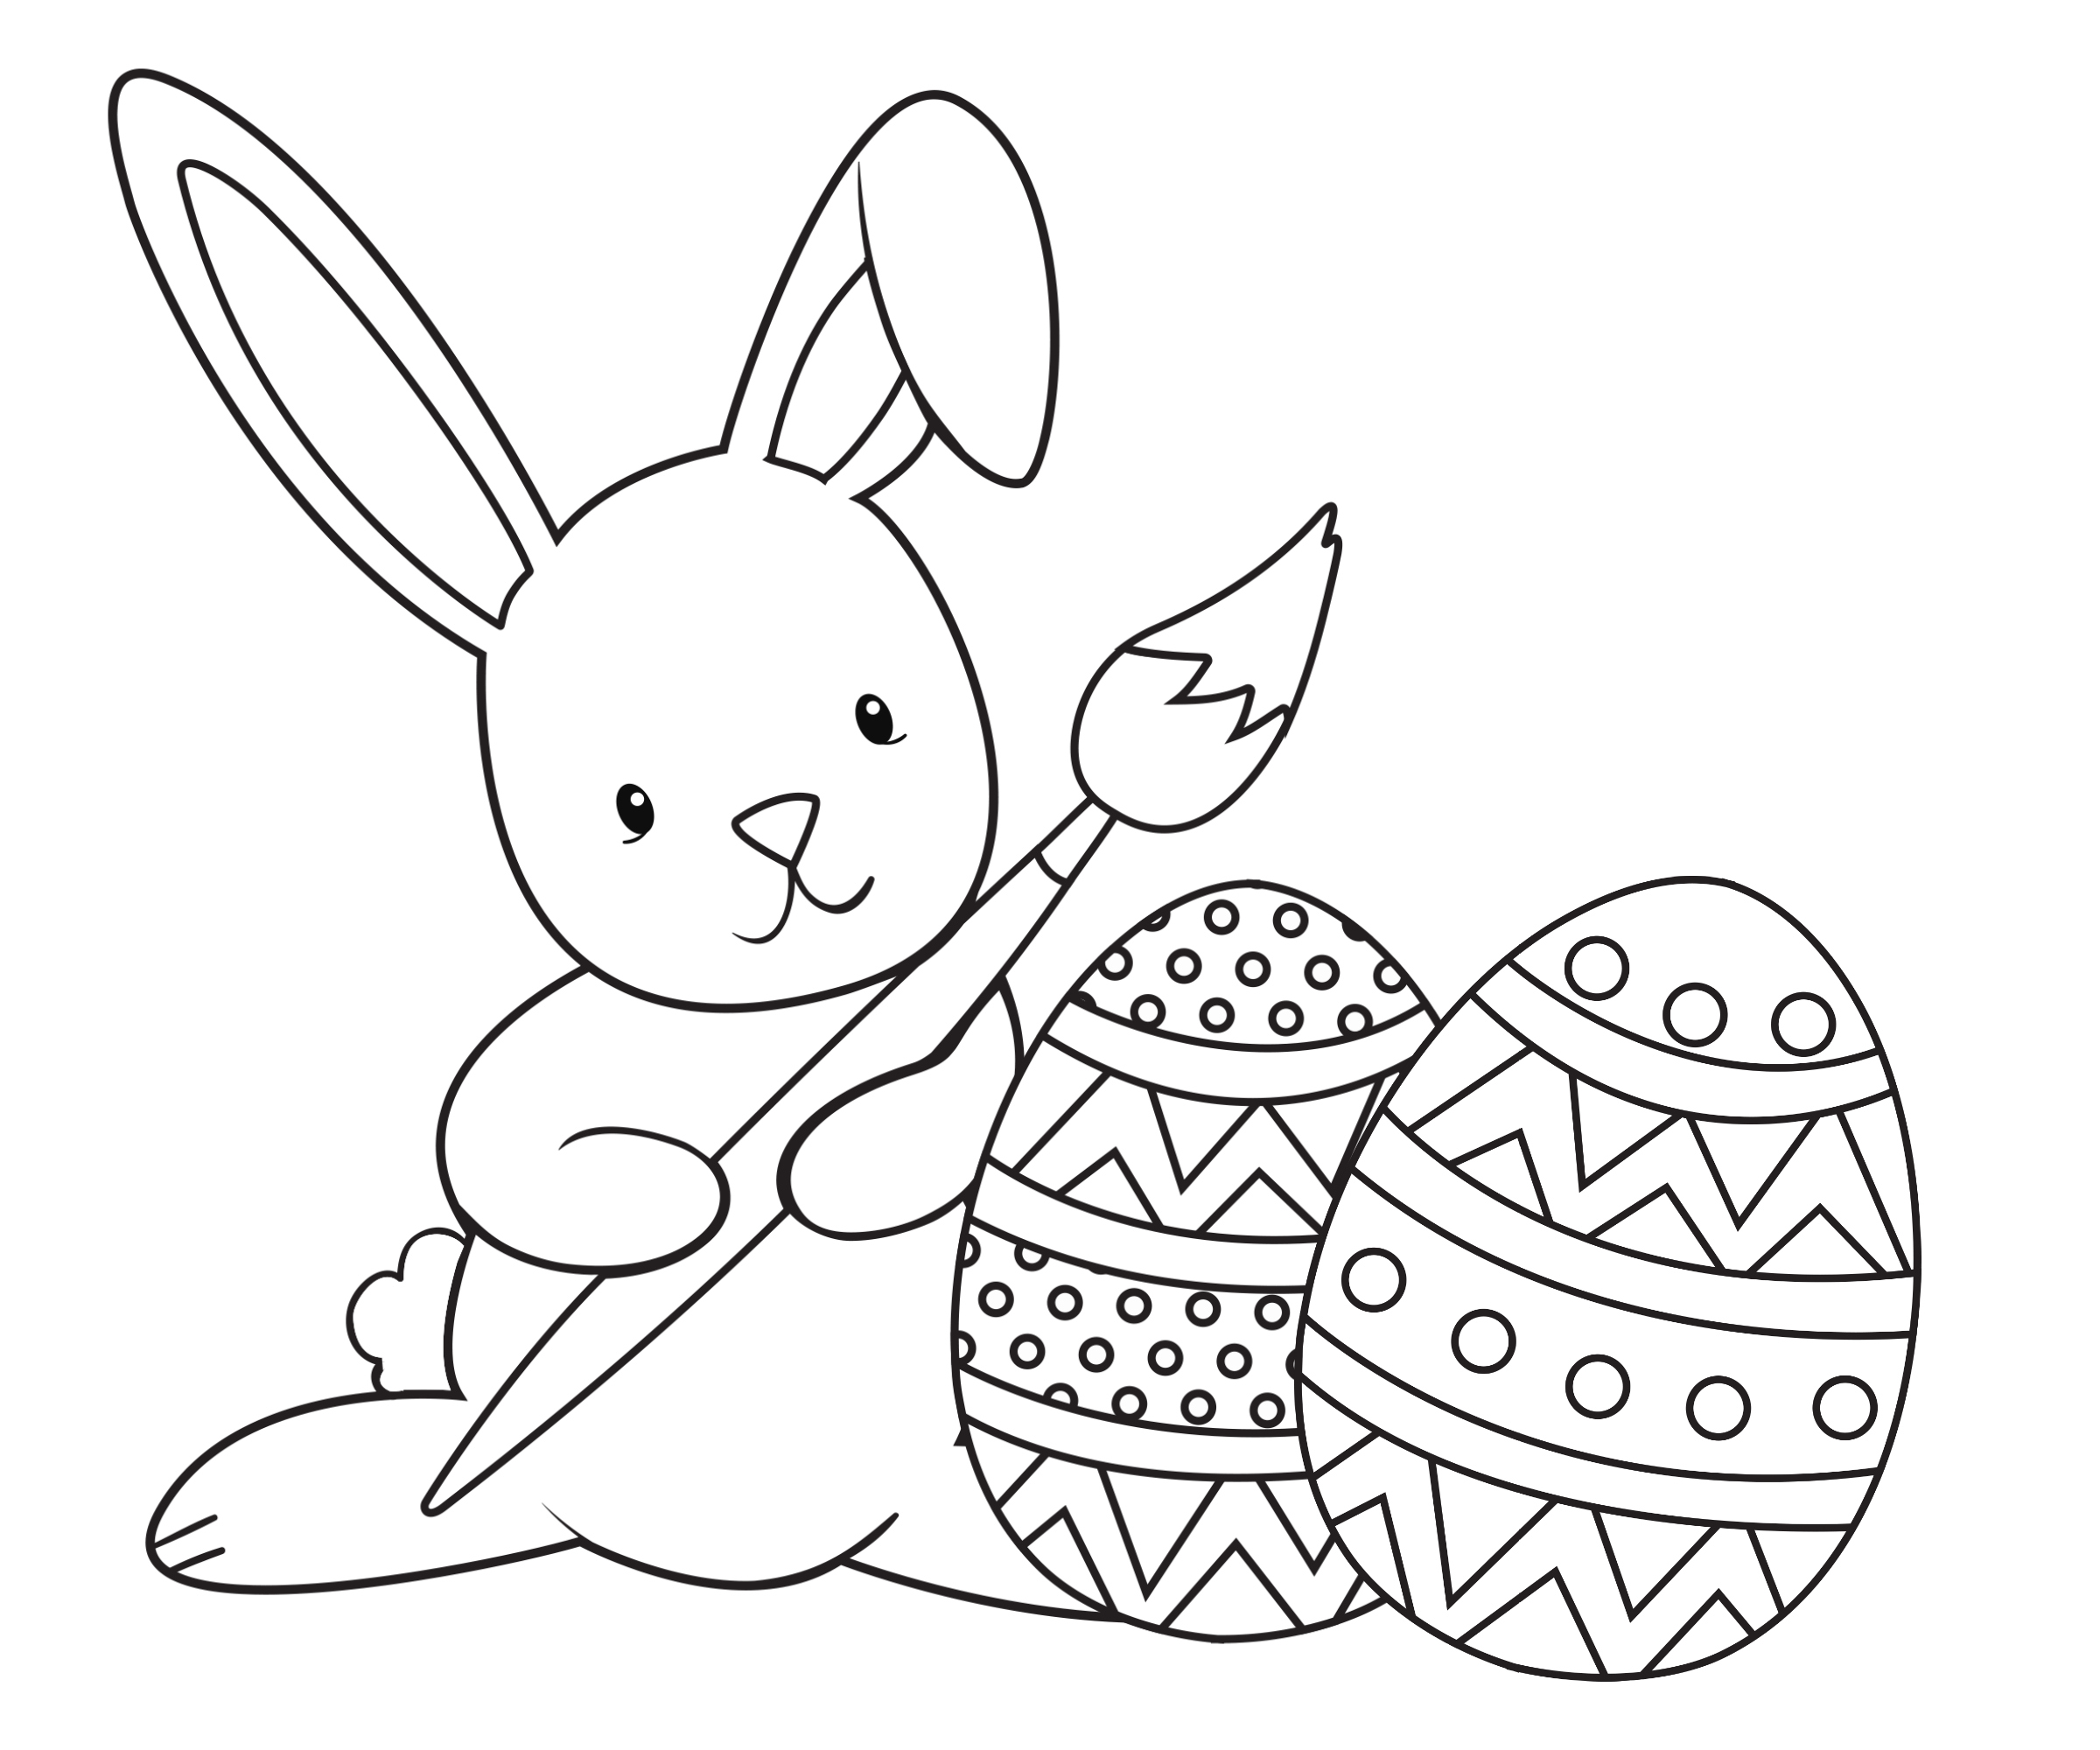 Easter Coloring Pages for Kids Crazy Little Projects Download Of Easter Coloring Pages for Kids Crazy Little Projects Printable